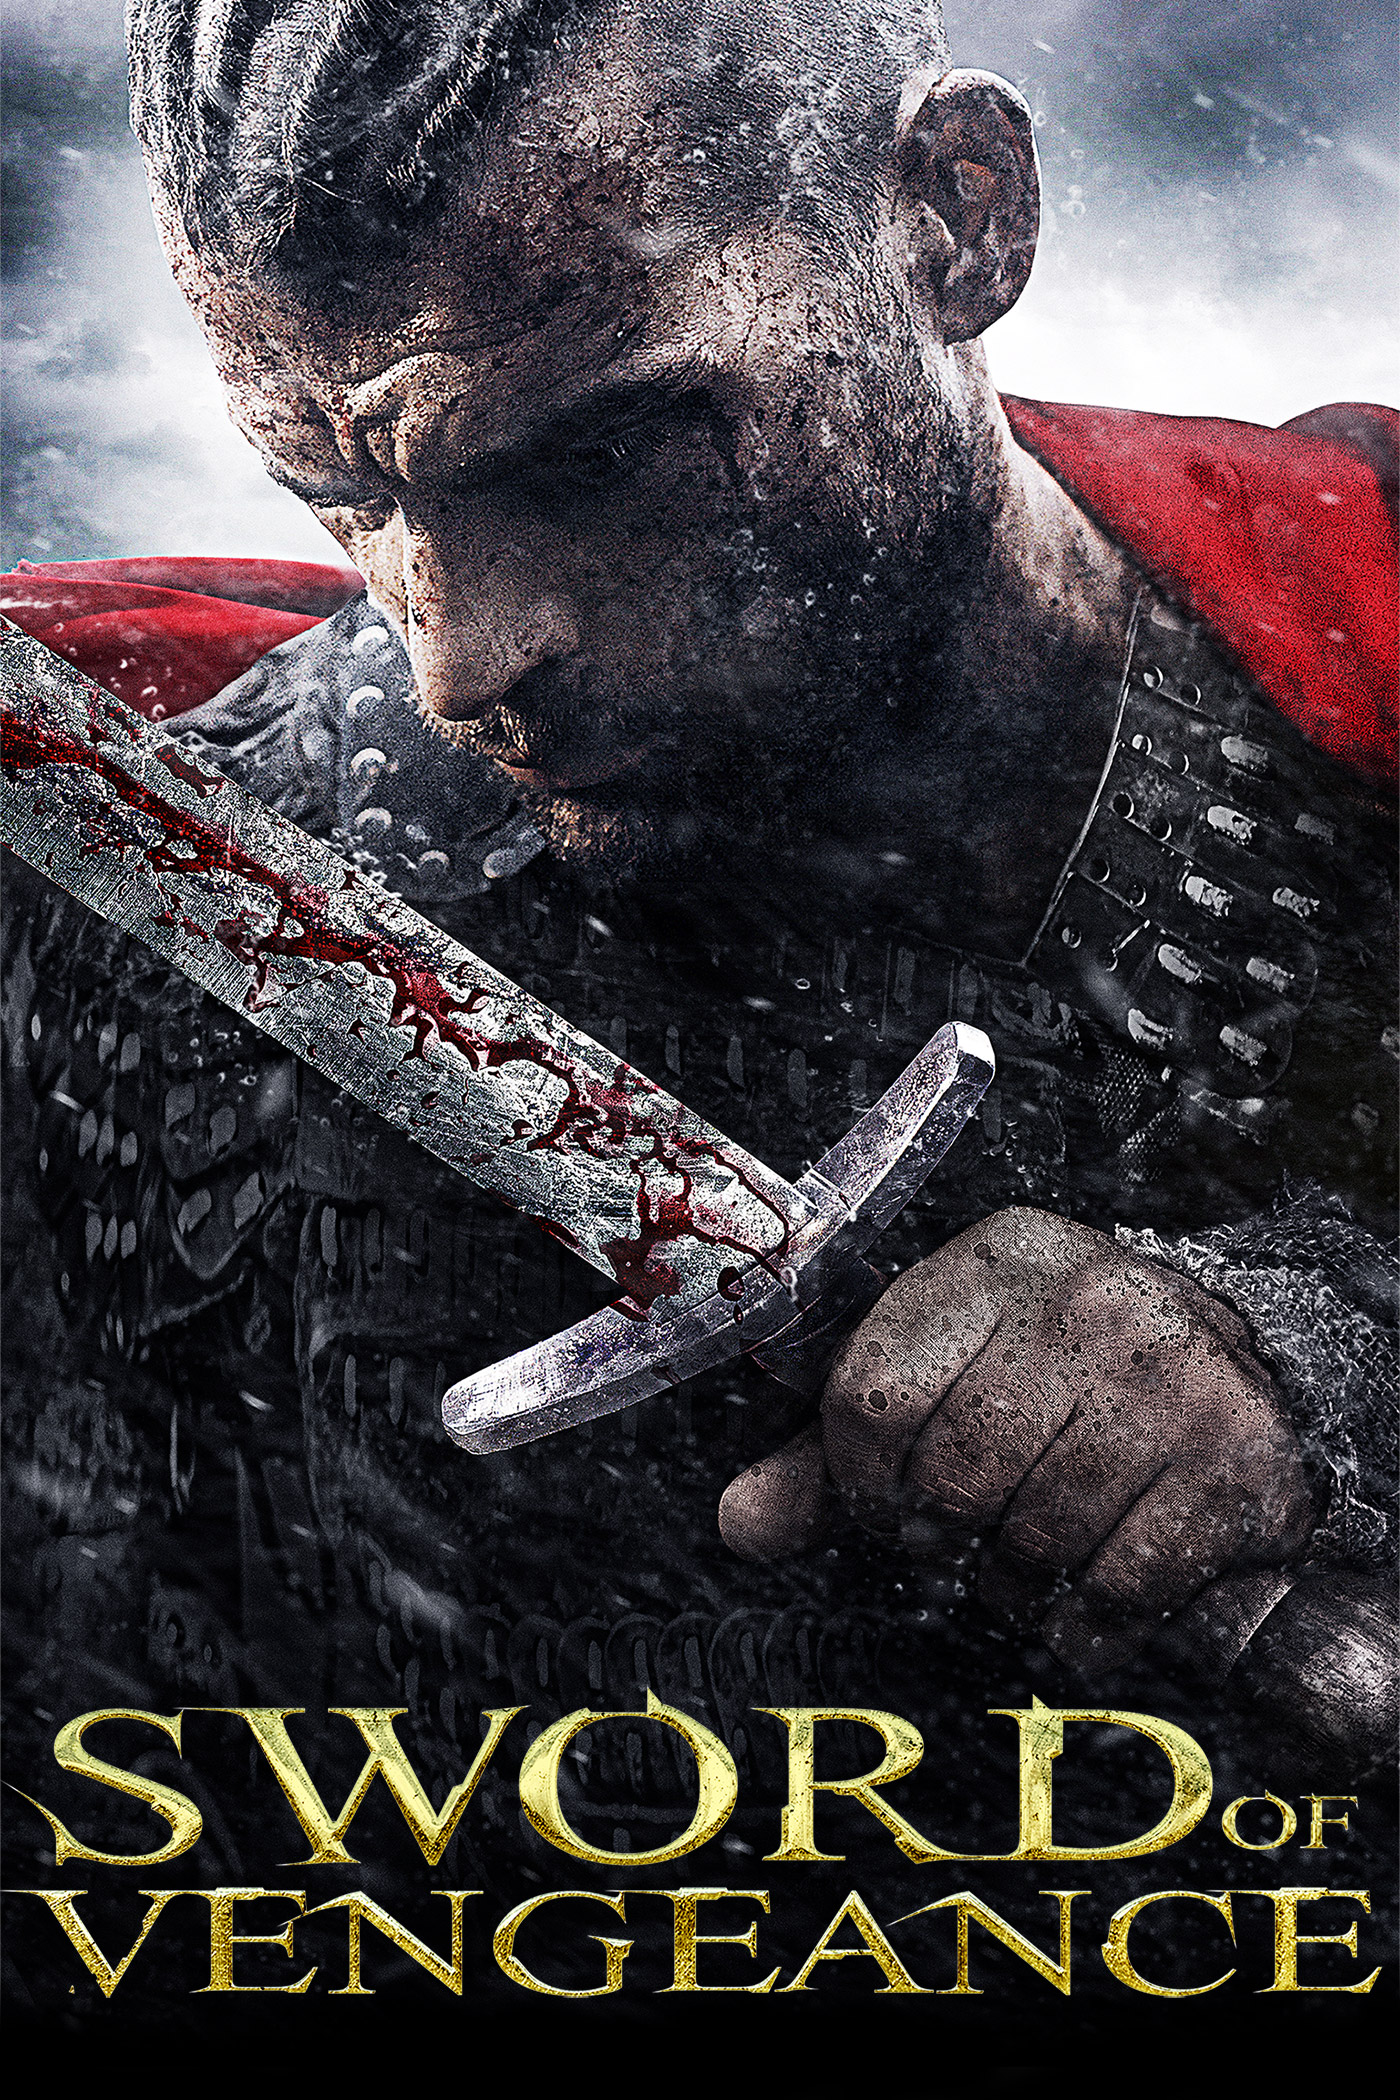 image Sword of Vengeance Watch Full Movie Free Online